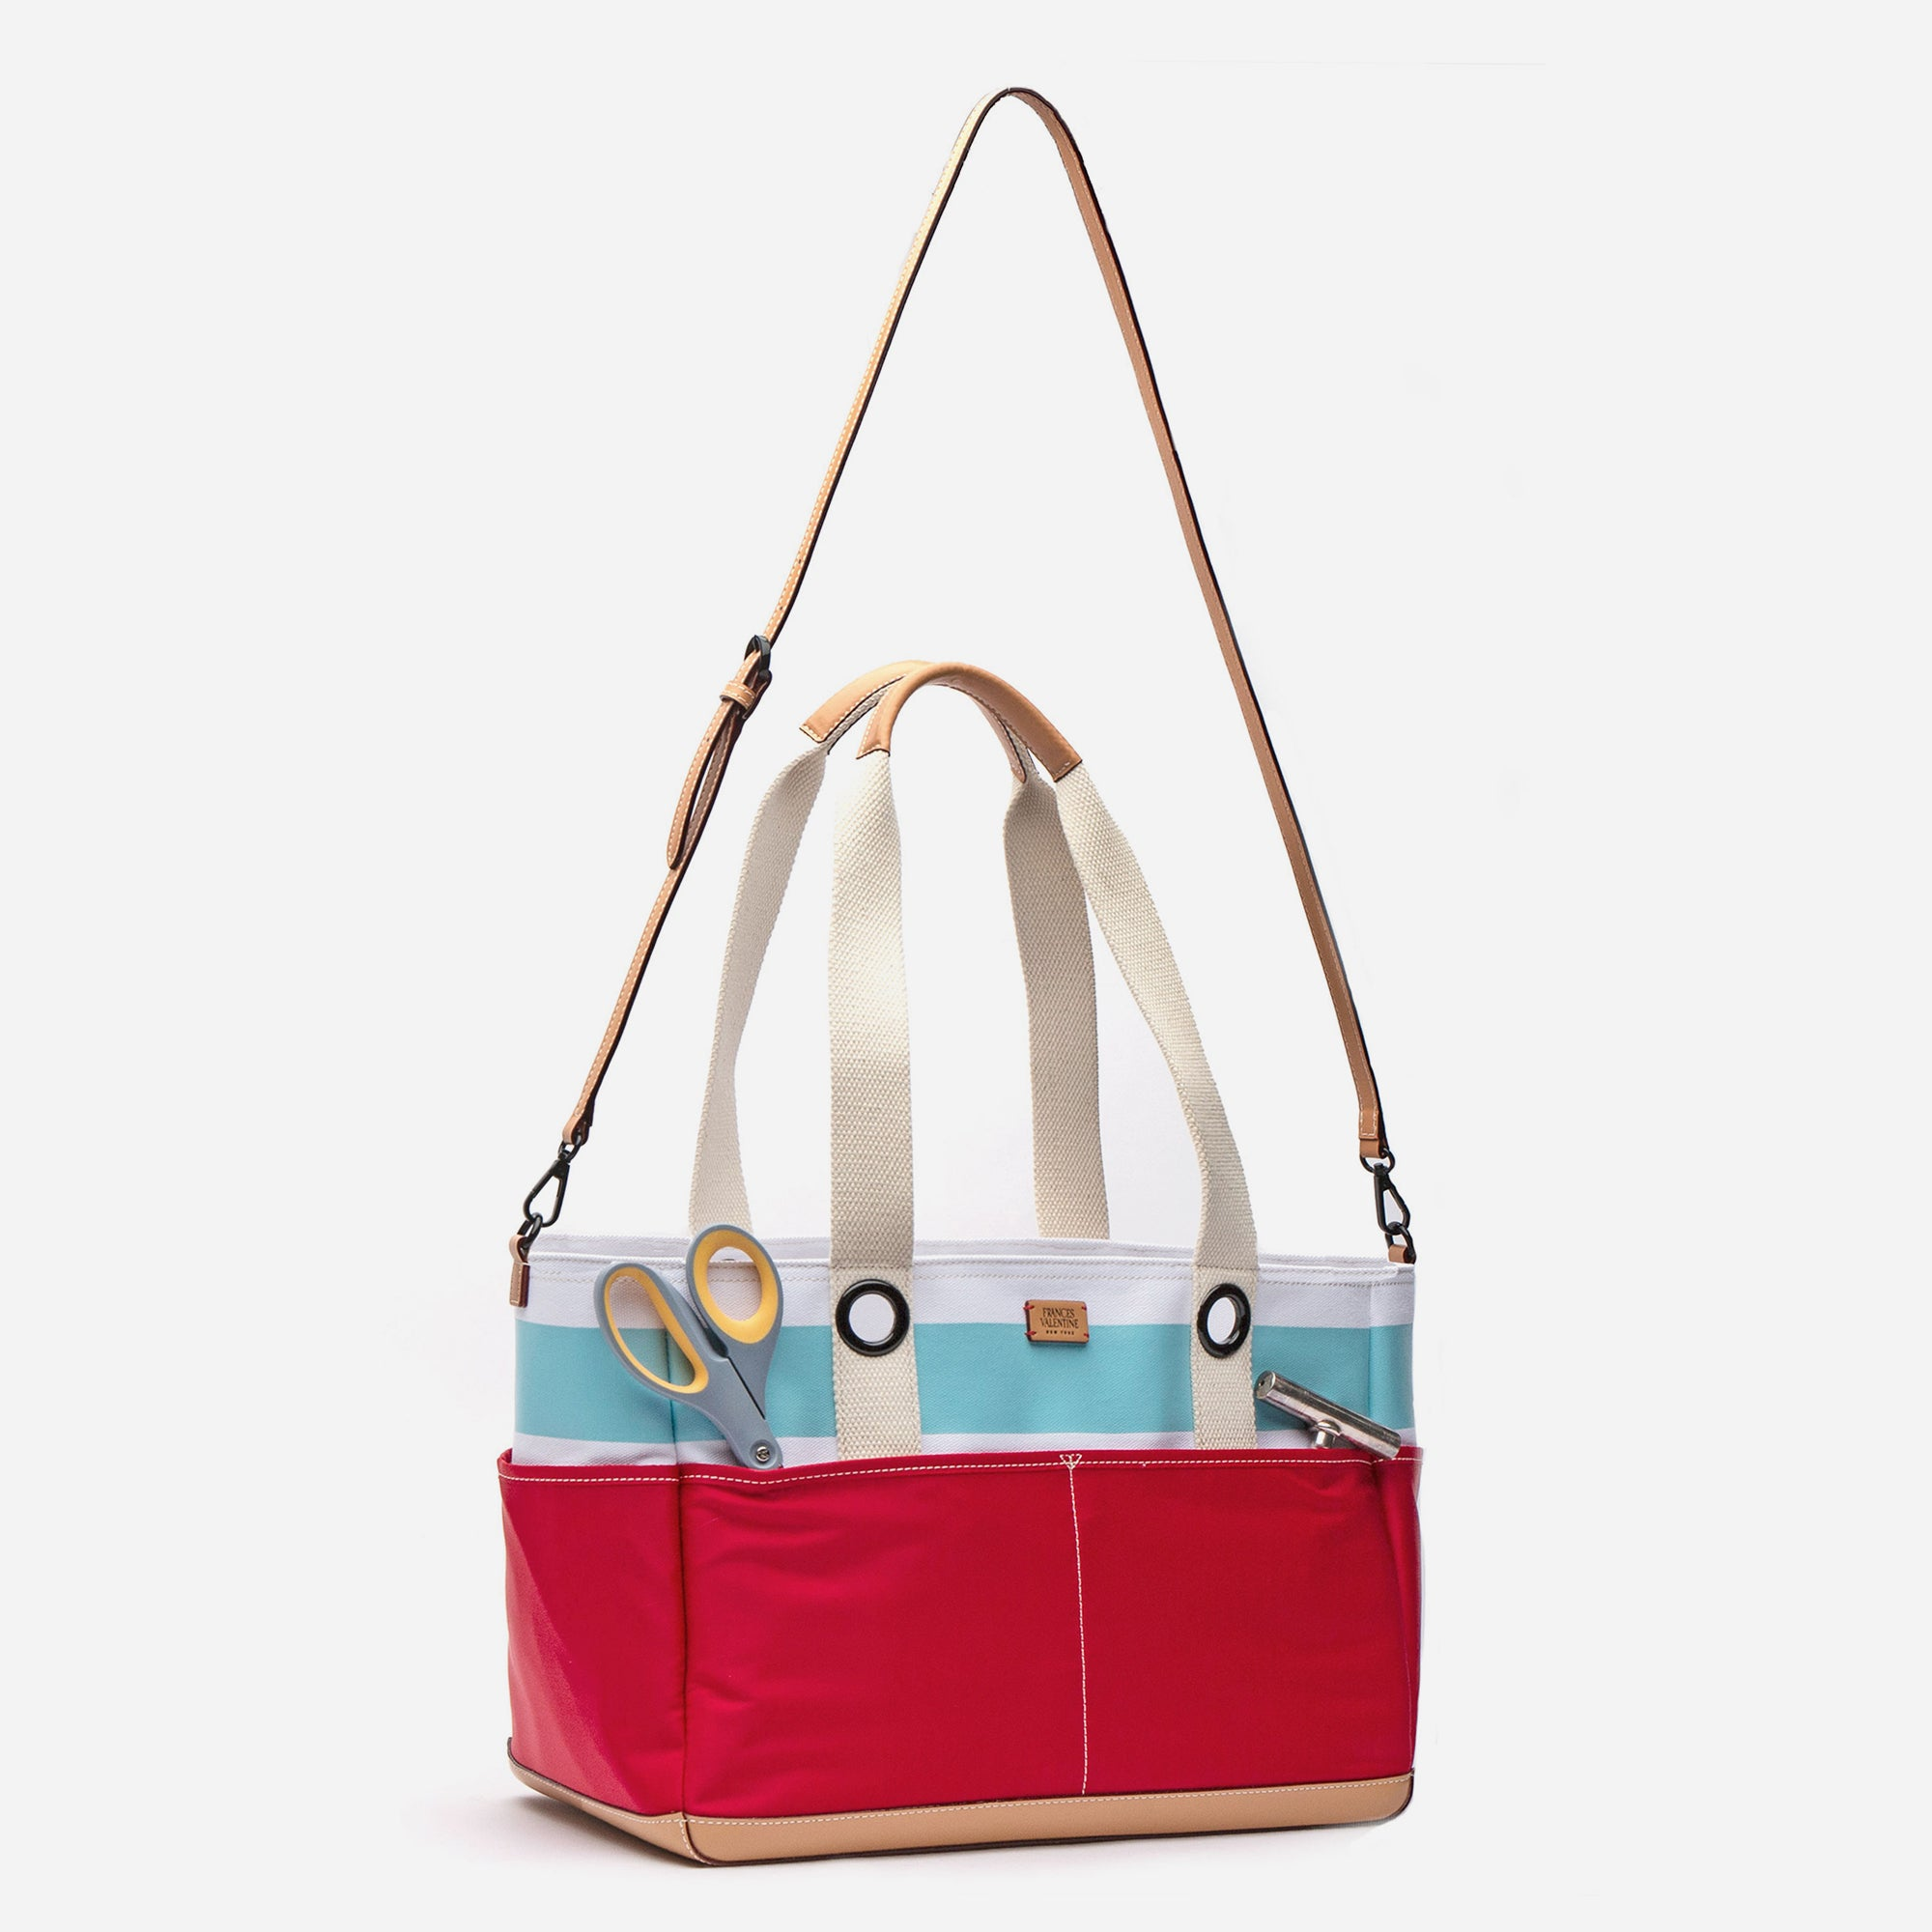 Gibson Beach Gardening Tote Light Blue Red